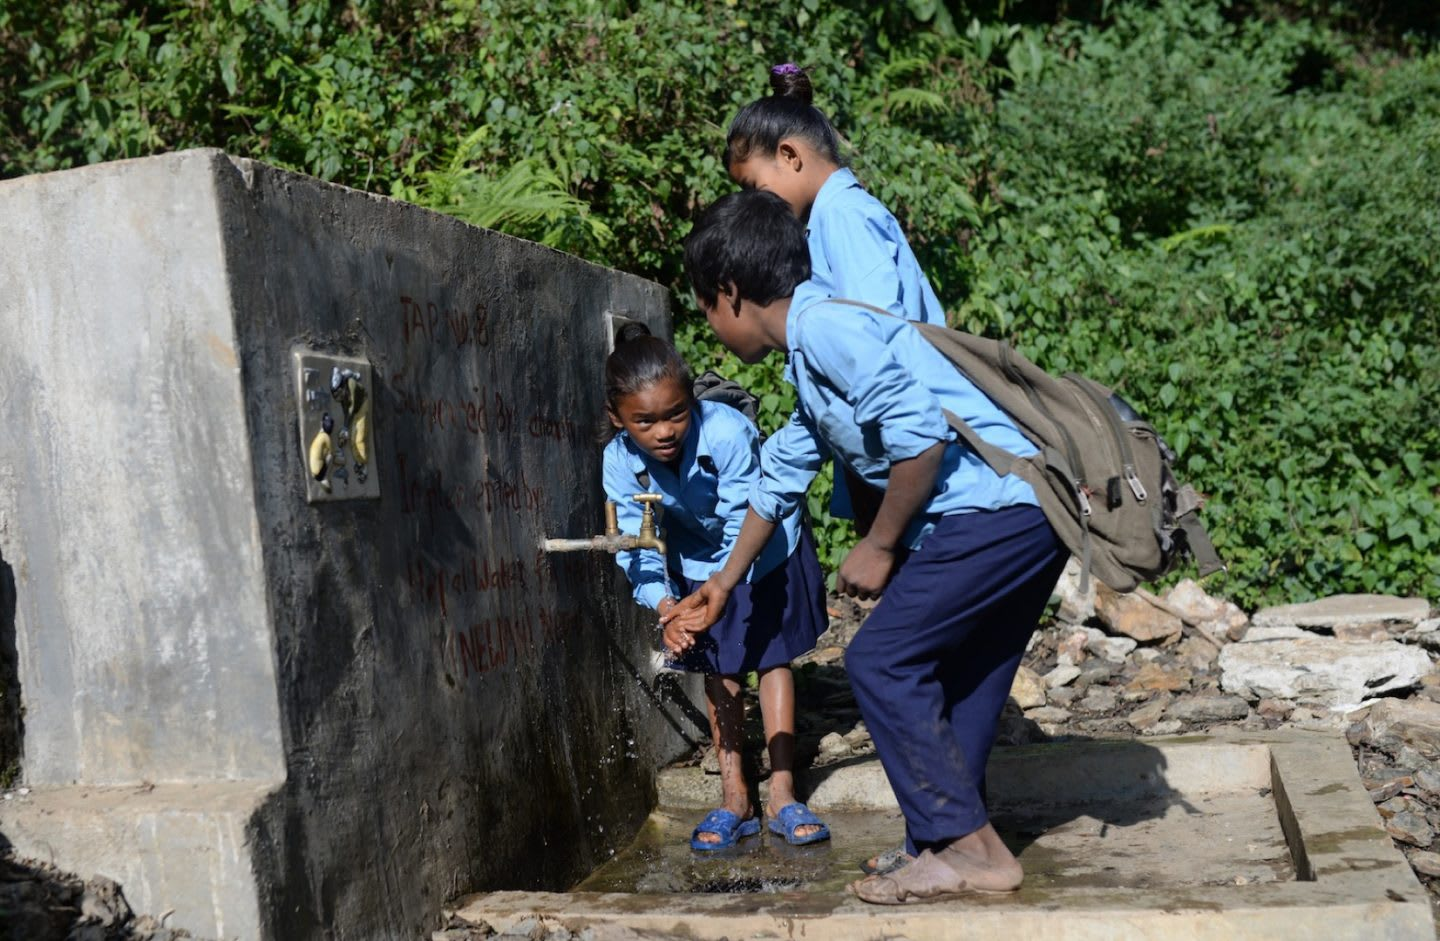 Children washing their hands in a water fountain.